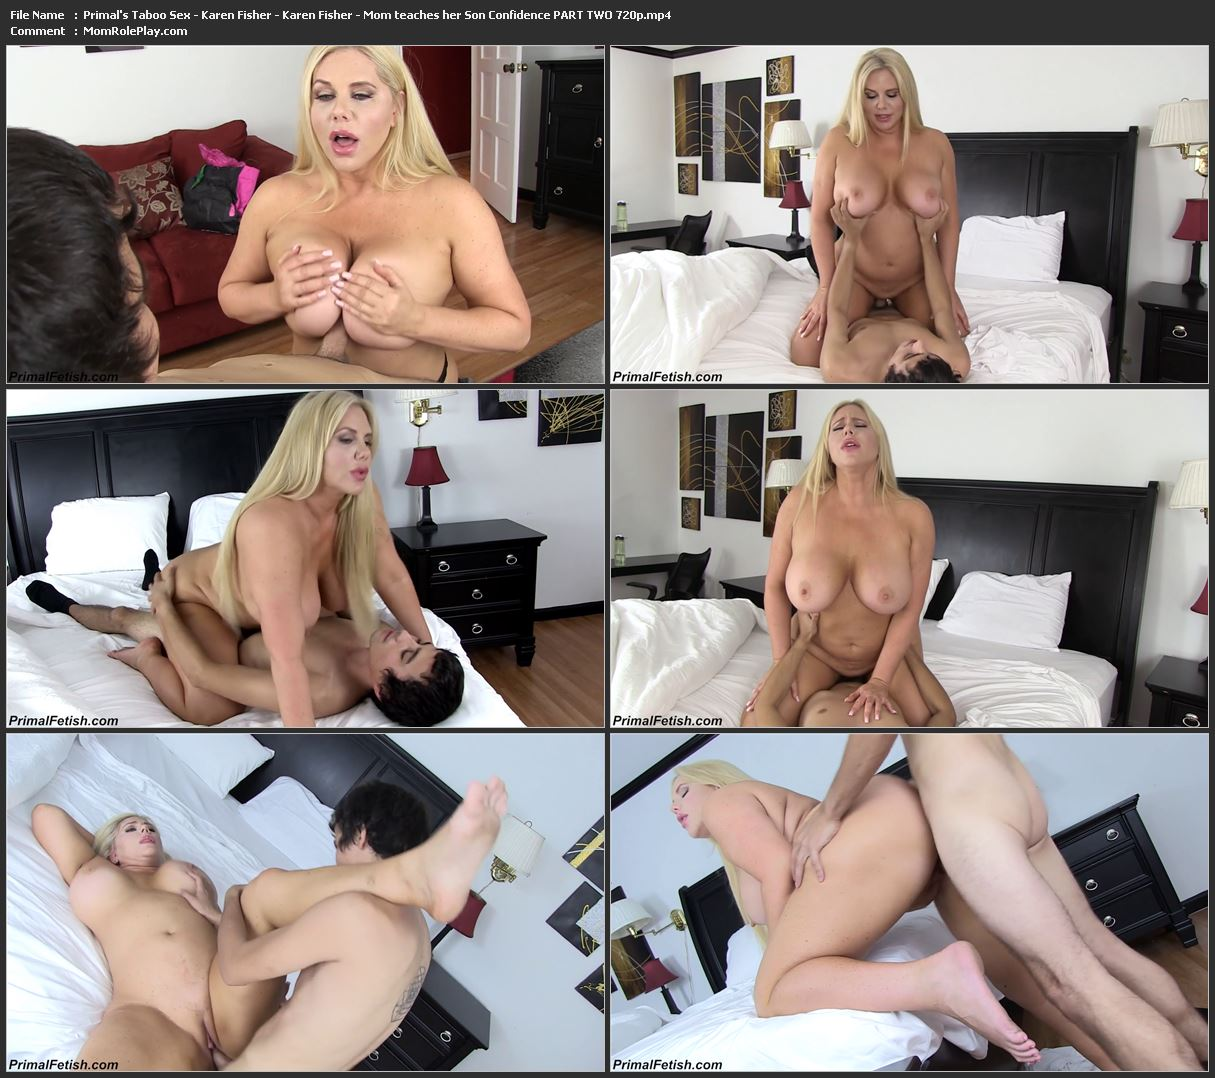 Primal's Taboo Sex - Karen Fisher - Karen Fisher - Mom teaches her Son Confidence PART TWO 720p